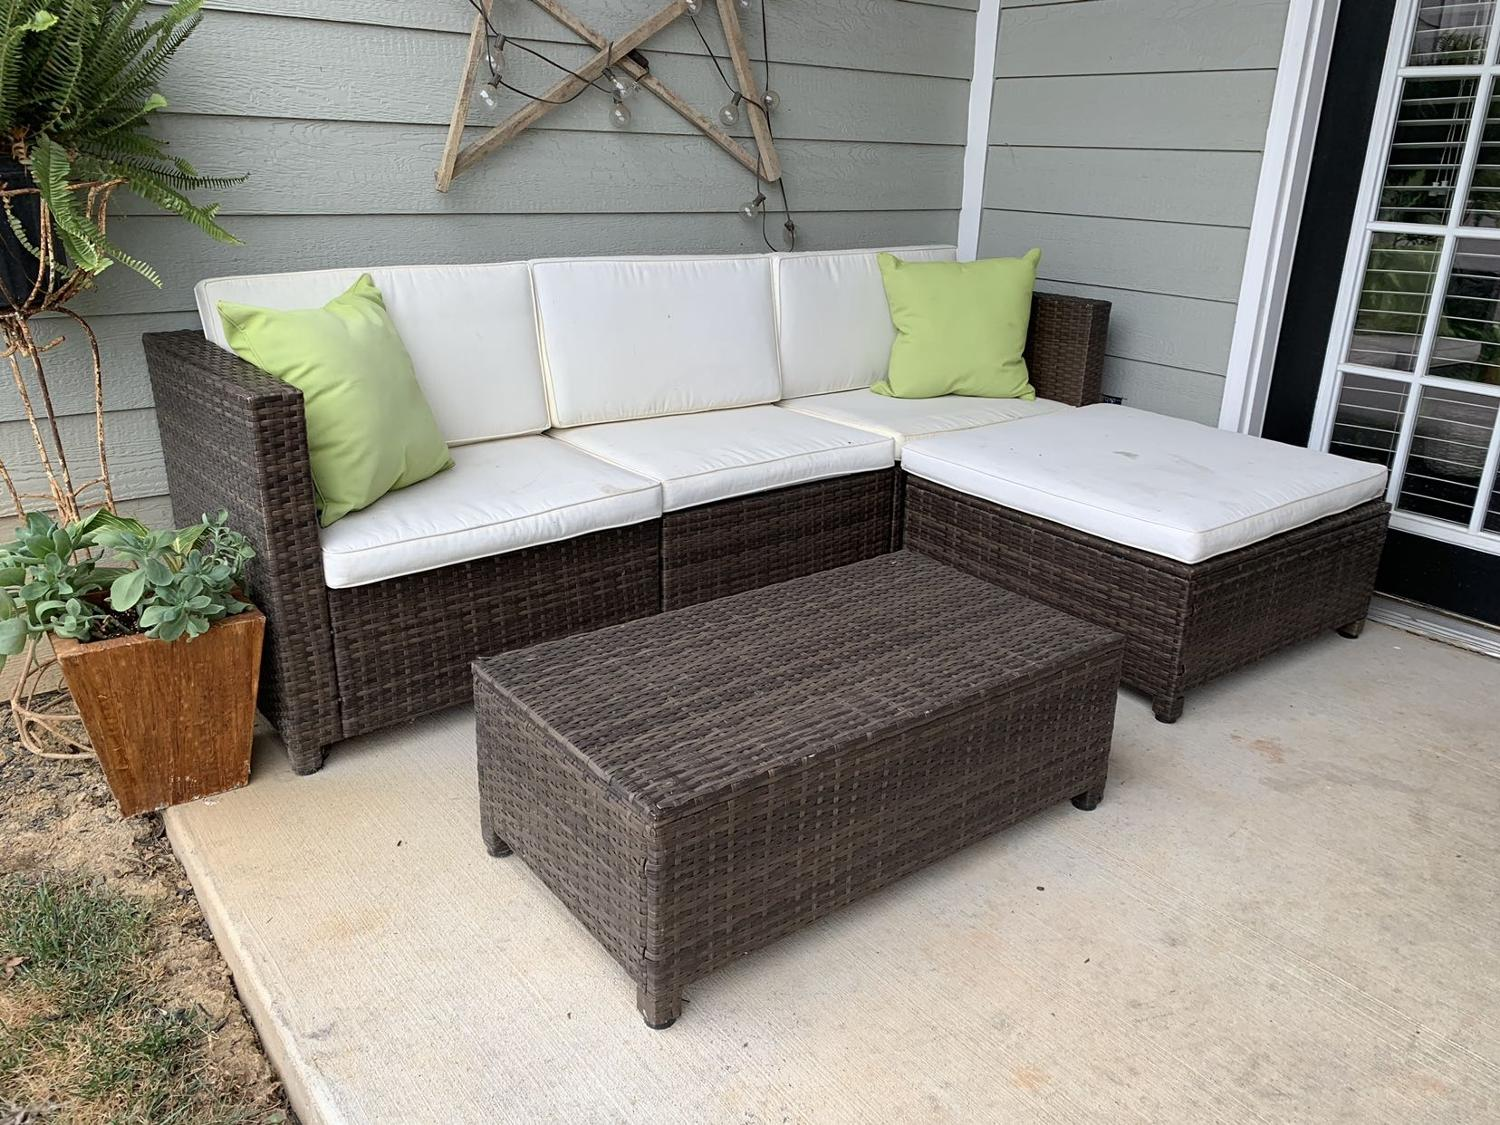 Find more 5 Piece Outdoor Sectional for sale at up to 90% off